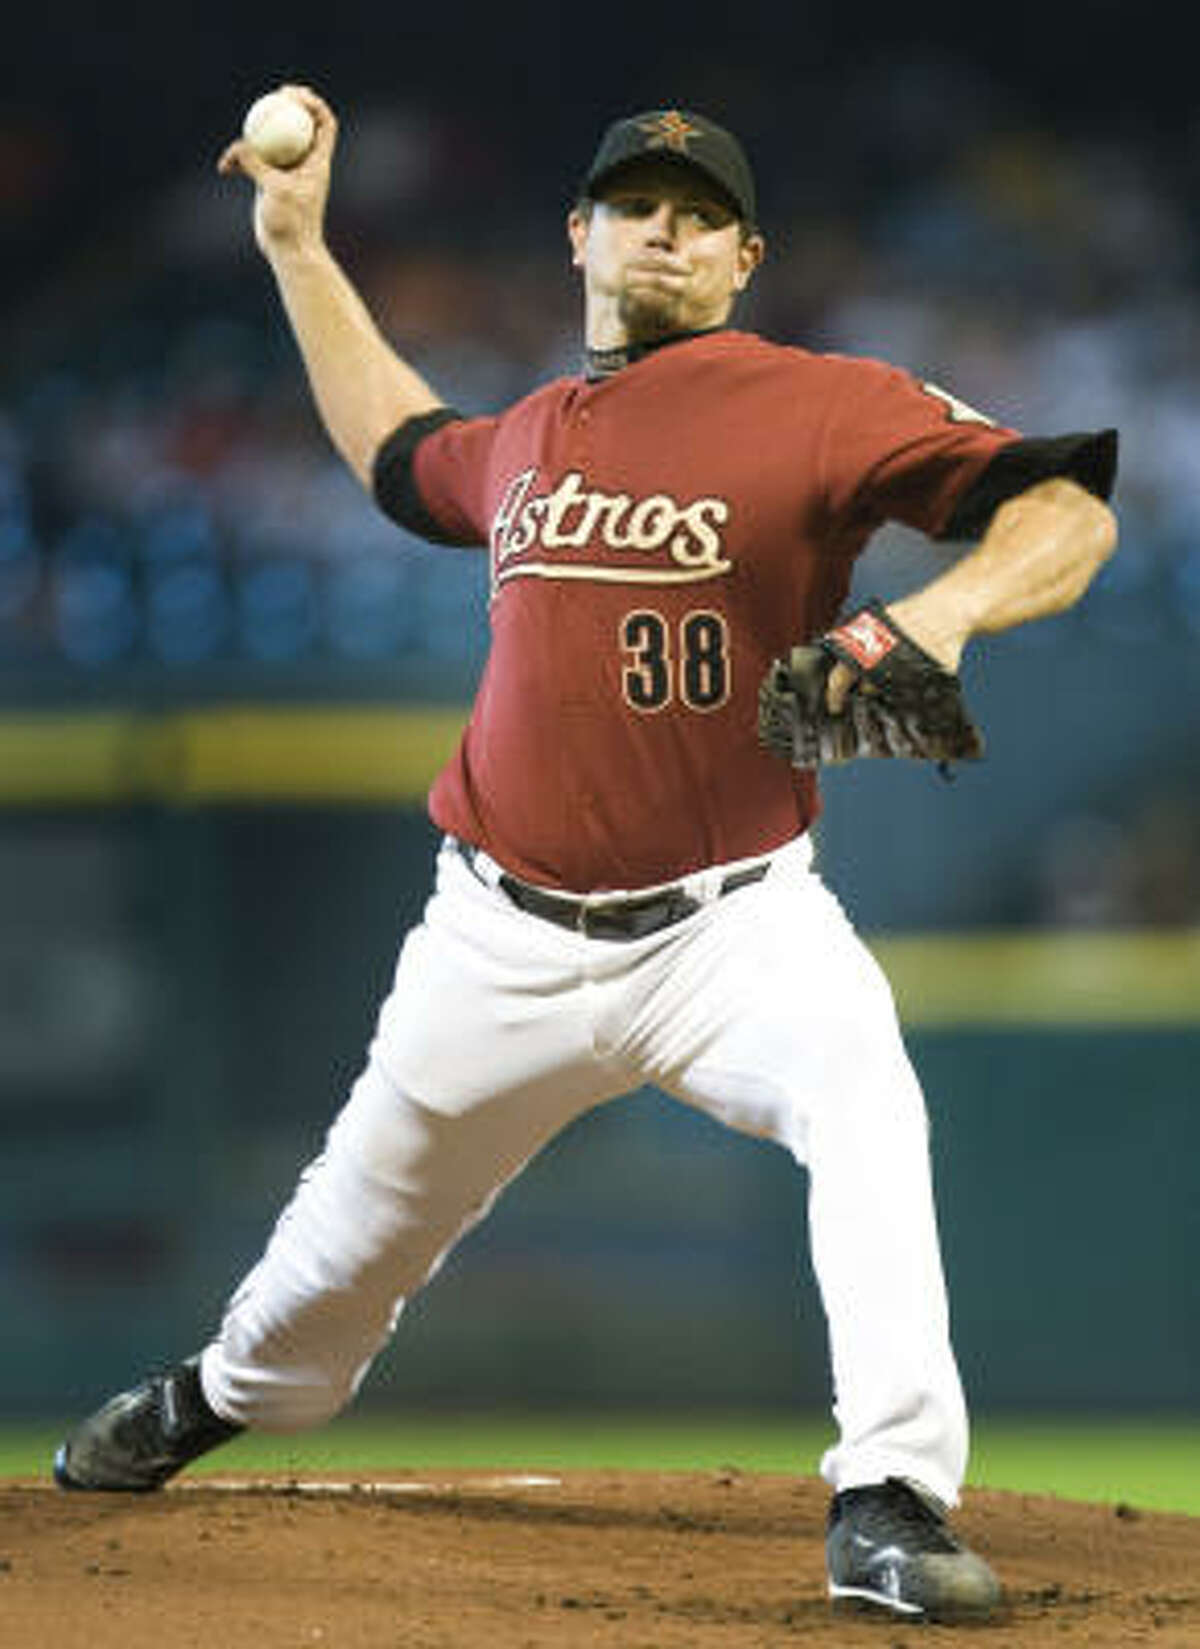 Sept. 7: Astros 4, Phillies 3 Astros starter Brian Moehler gave up three runs and allowed five hits in five innings of work.